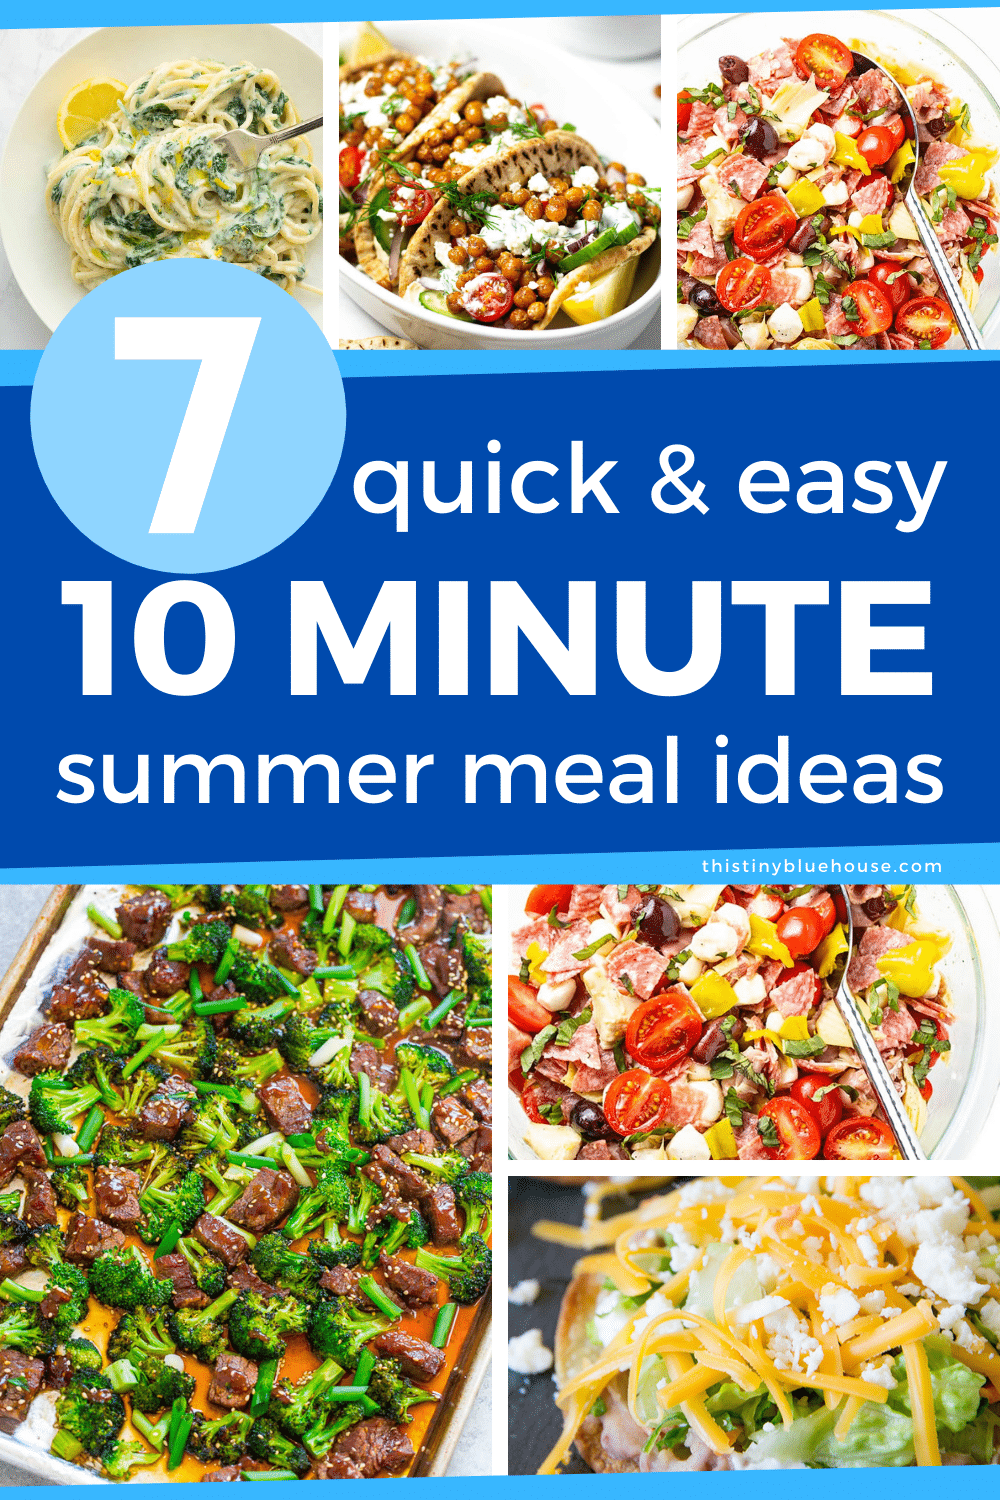 Here are 7 popular quick and easy 10 minute meals perfect for nights when you don't have time (or desire) to cook an elaborate meal. Fresh, healthy and nutritious these quick and easy 10 minute meals are a perfect fresh and easy summertime dinner idea.